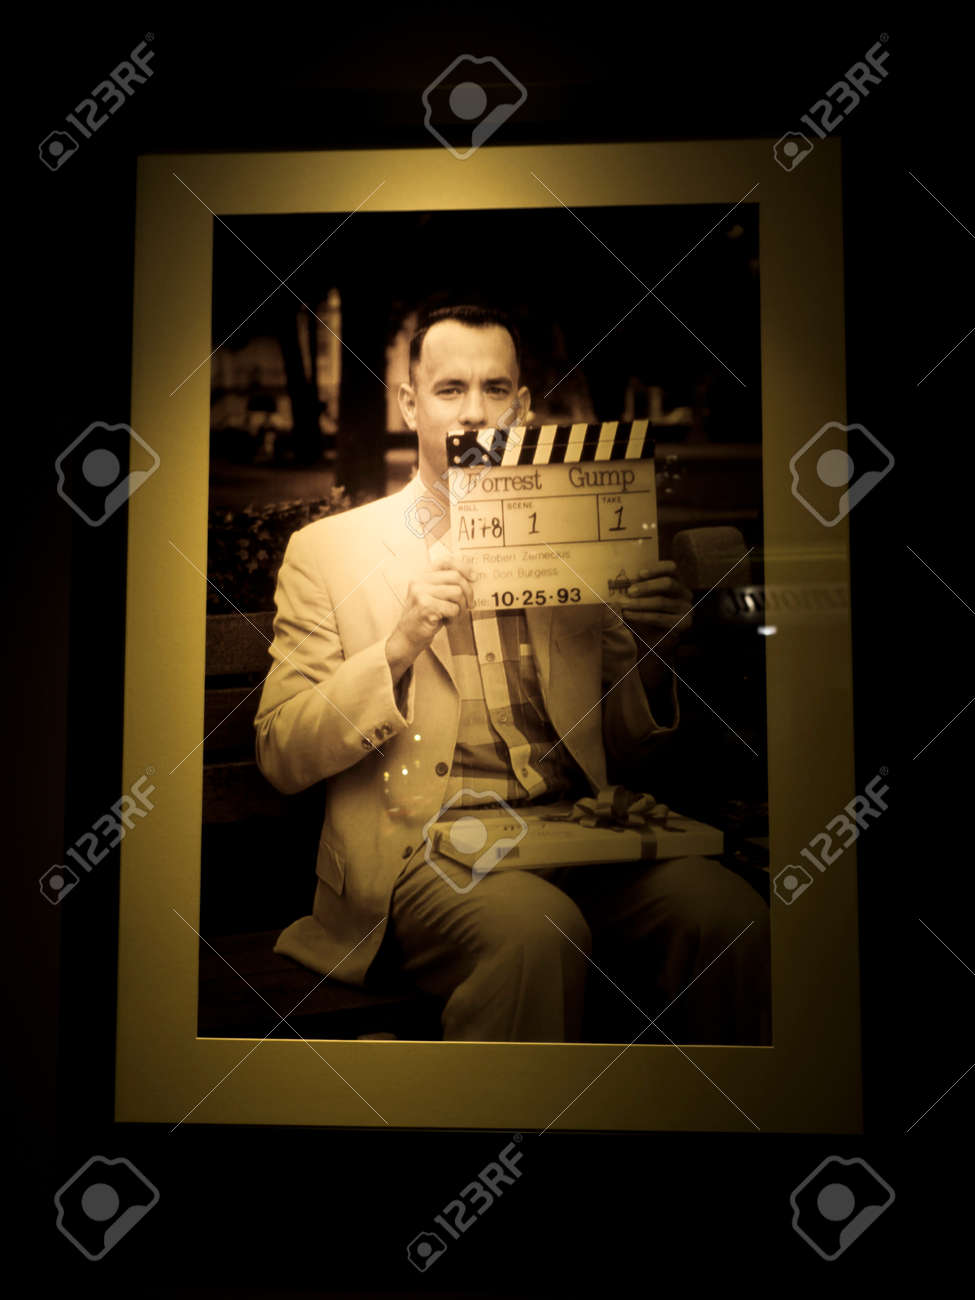 Tom Hanks picture on the Forrest Gump movie at Paramount Pictures